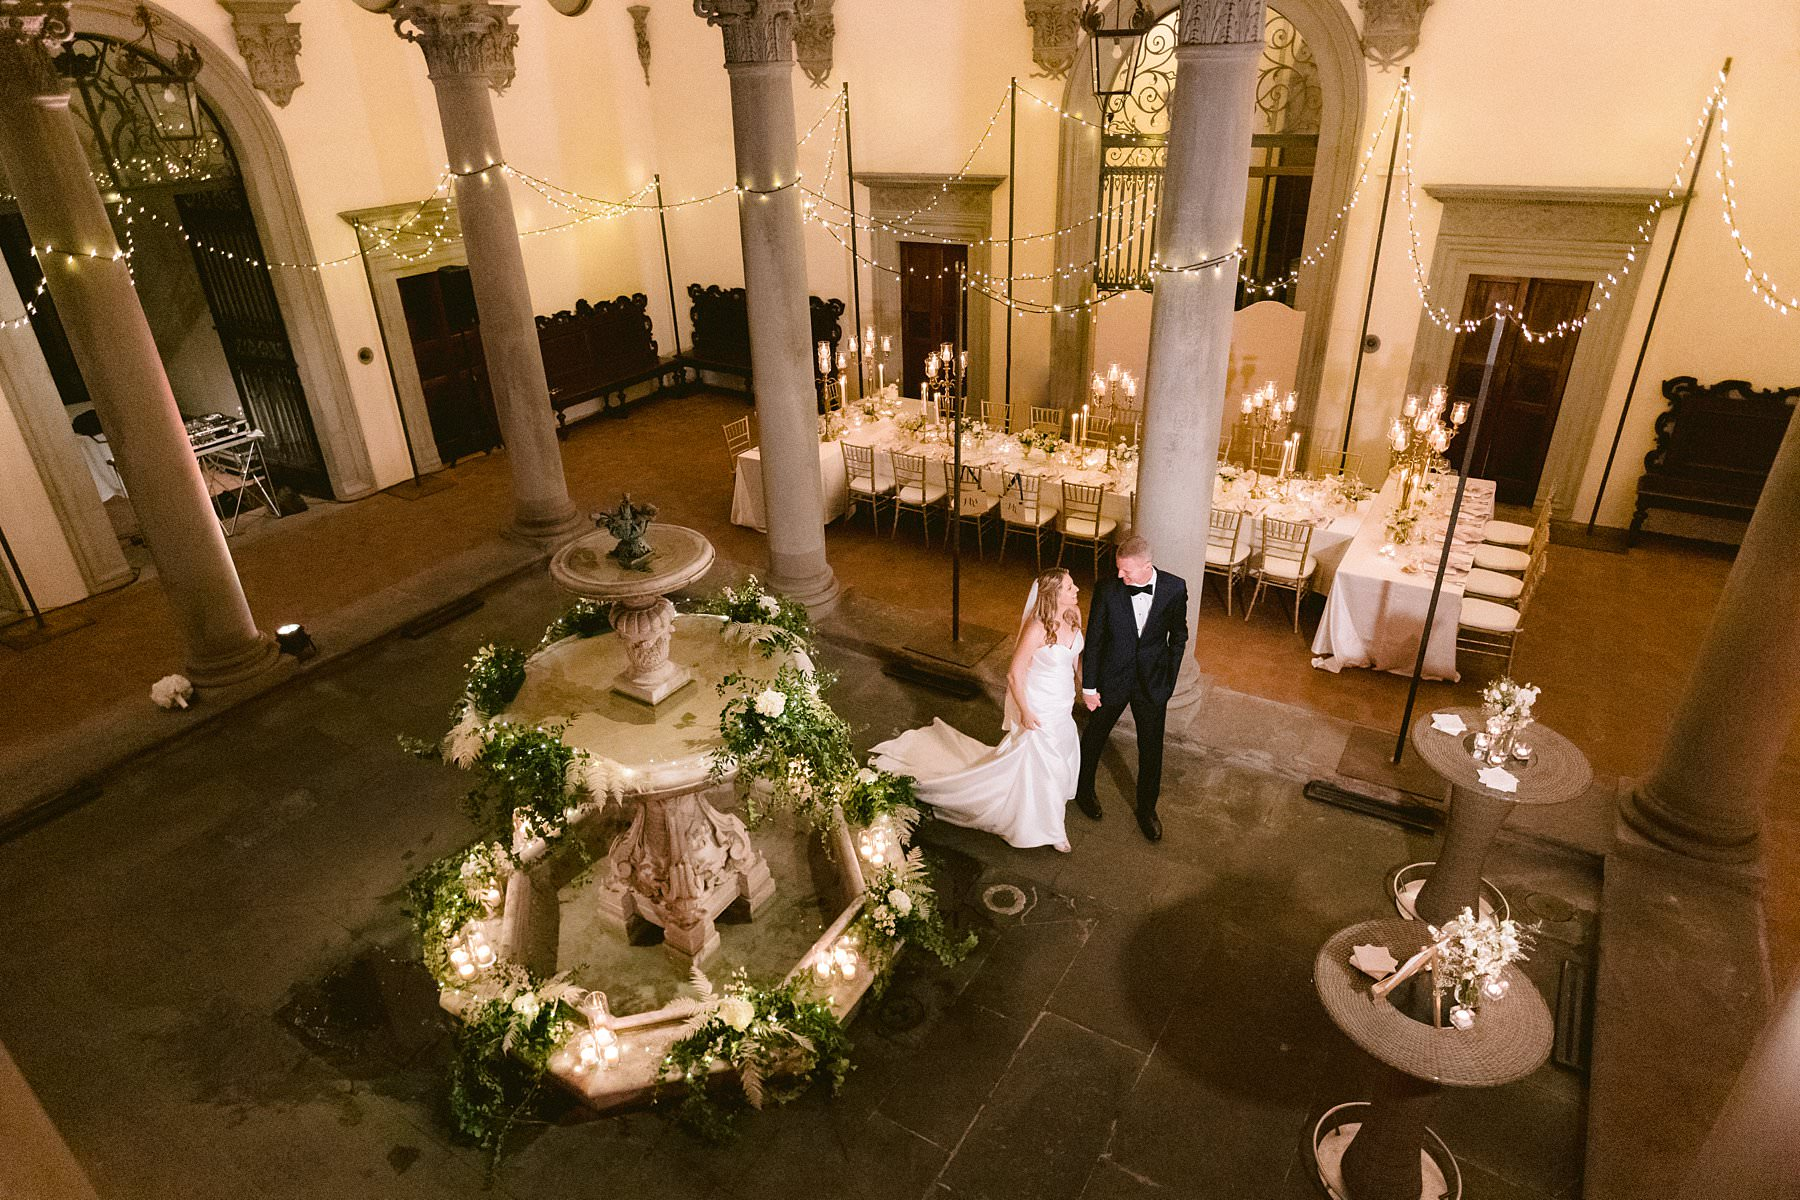 Palazzo Gondi, one of the very best wedding venue of Florence. What are the ingredients for an exquisite wedding? Love, family, friends, an emotional ceremony, a delicious dinner and a sumptuous location!